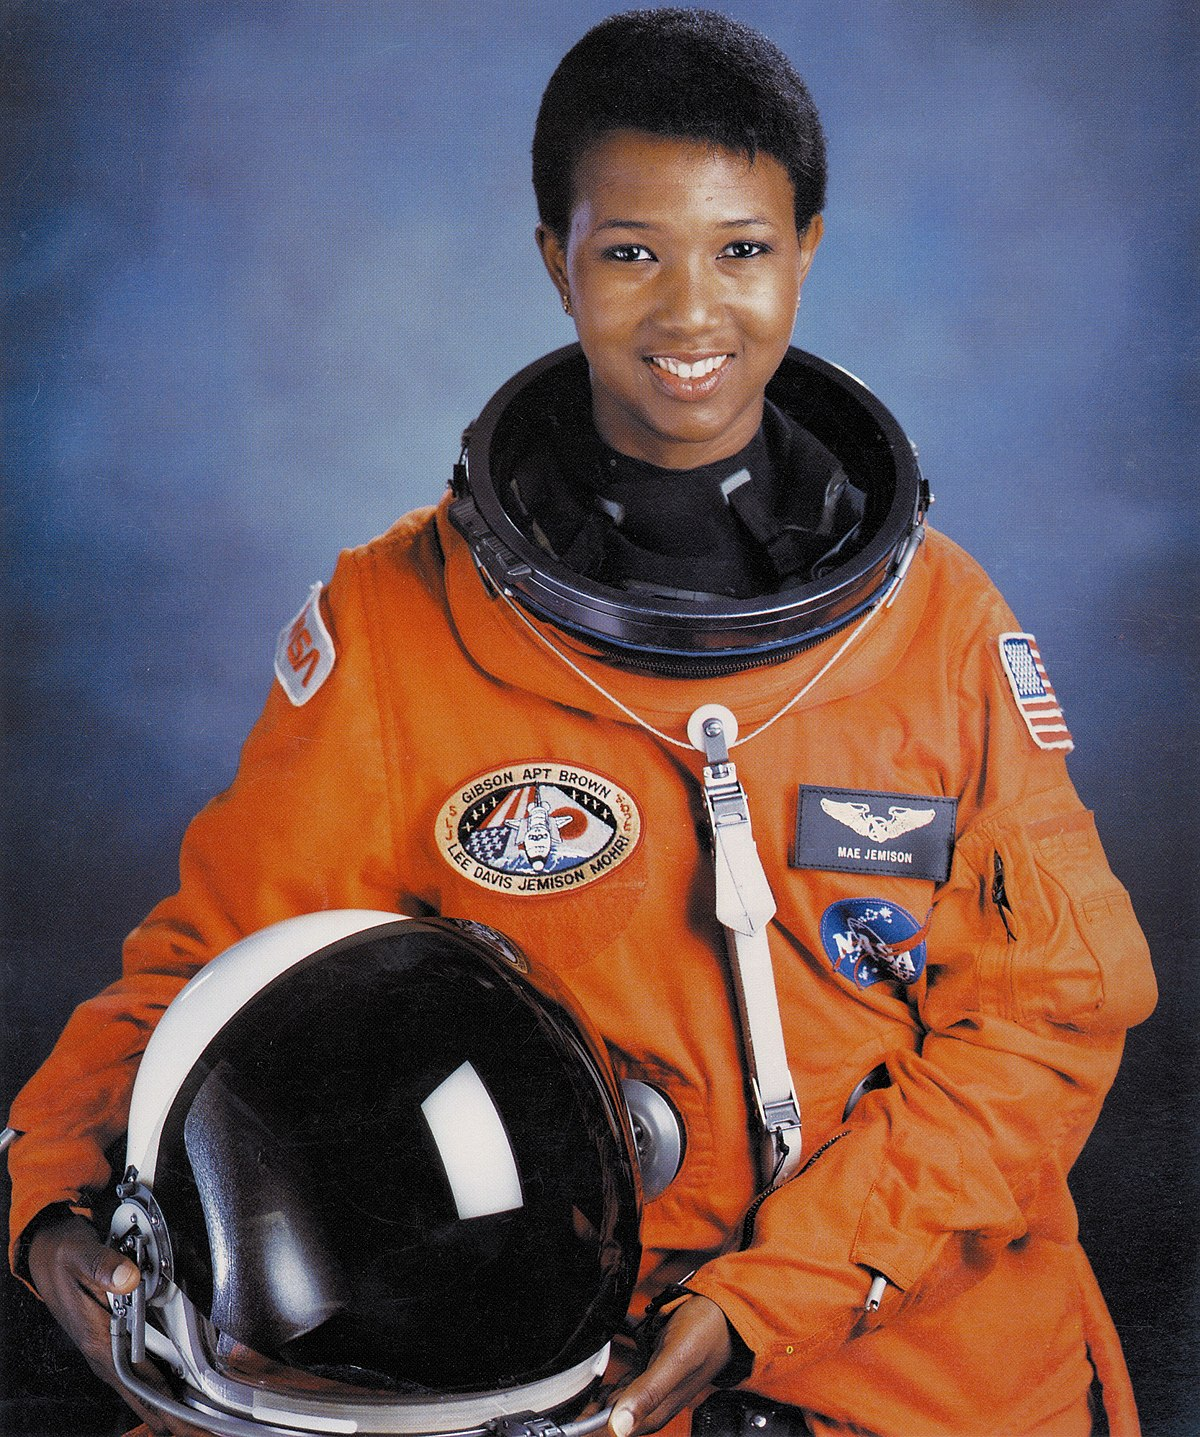 Mae Jemison - First African American woman in space